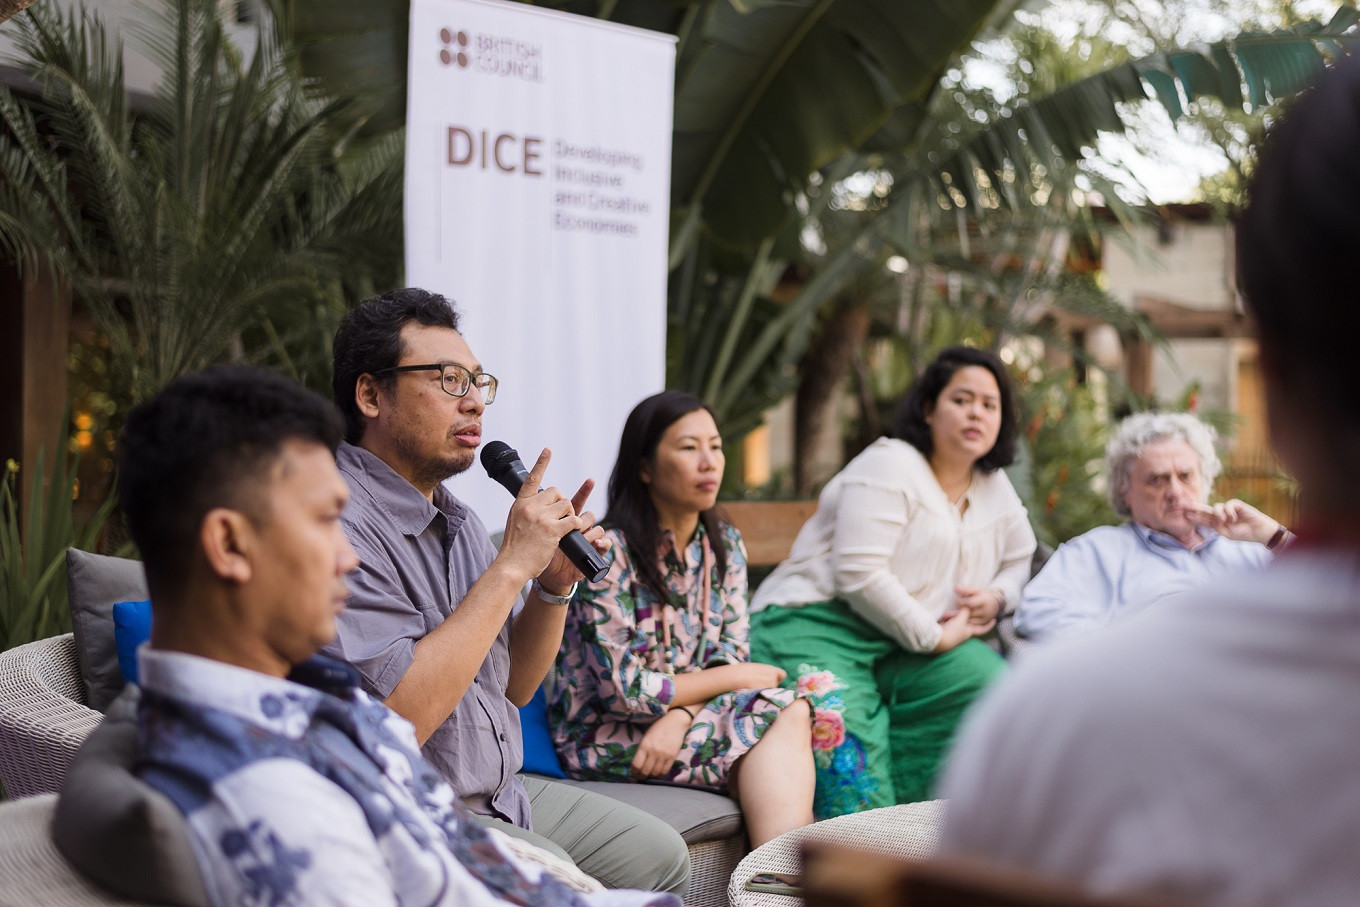 Baskoro Junianto (second left), an expert and curator with Bekraf), speaks about the future of the creative economy during a panel discussion on July 1.